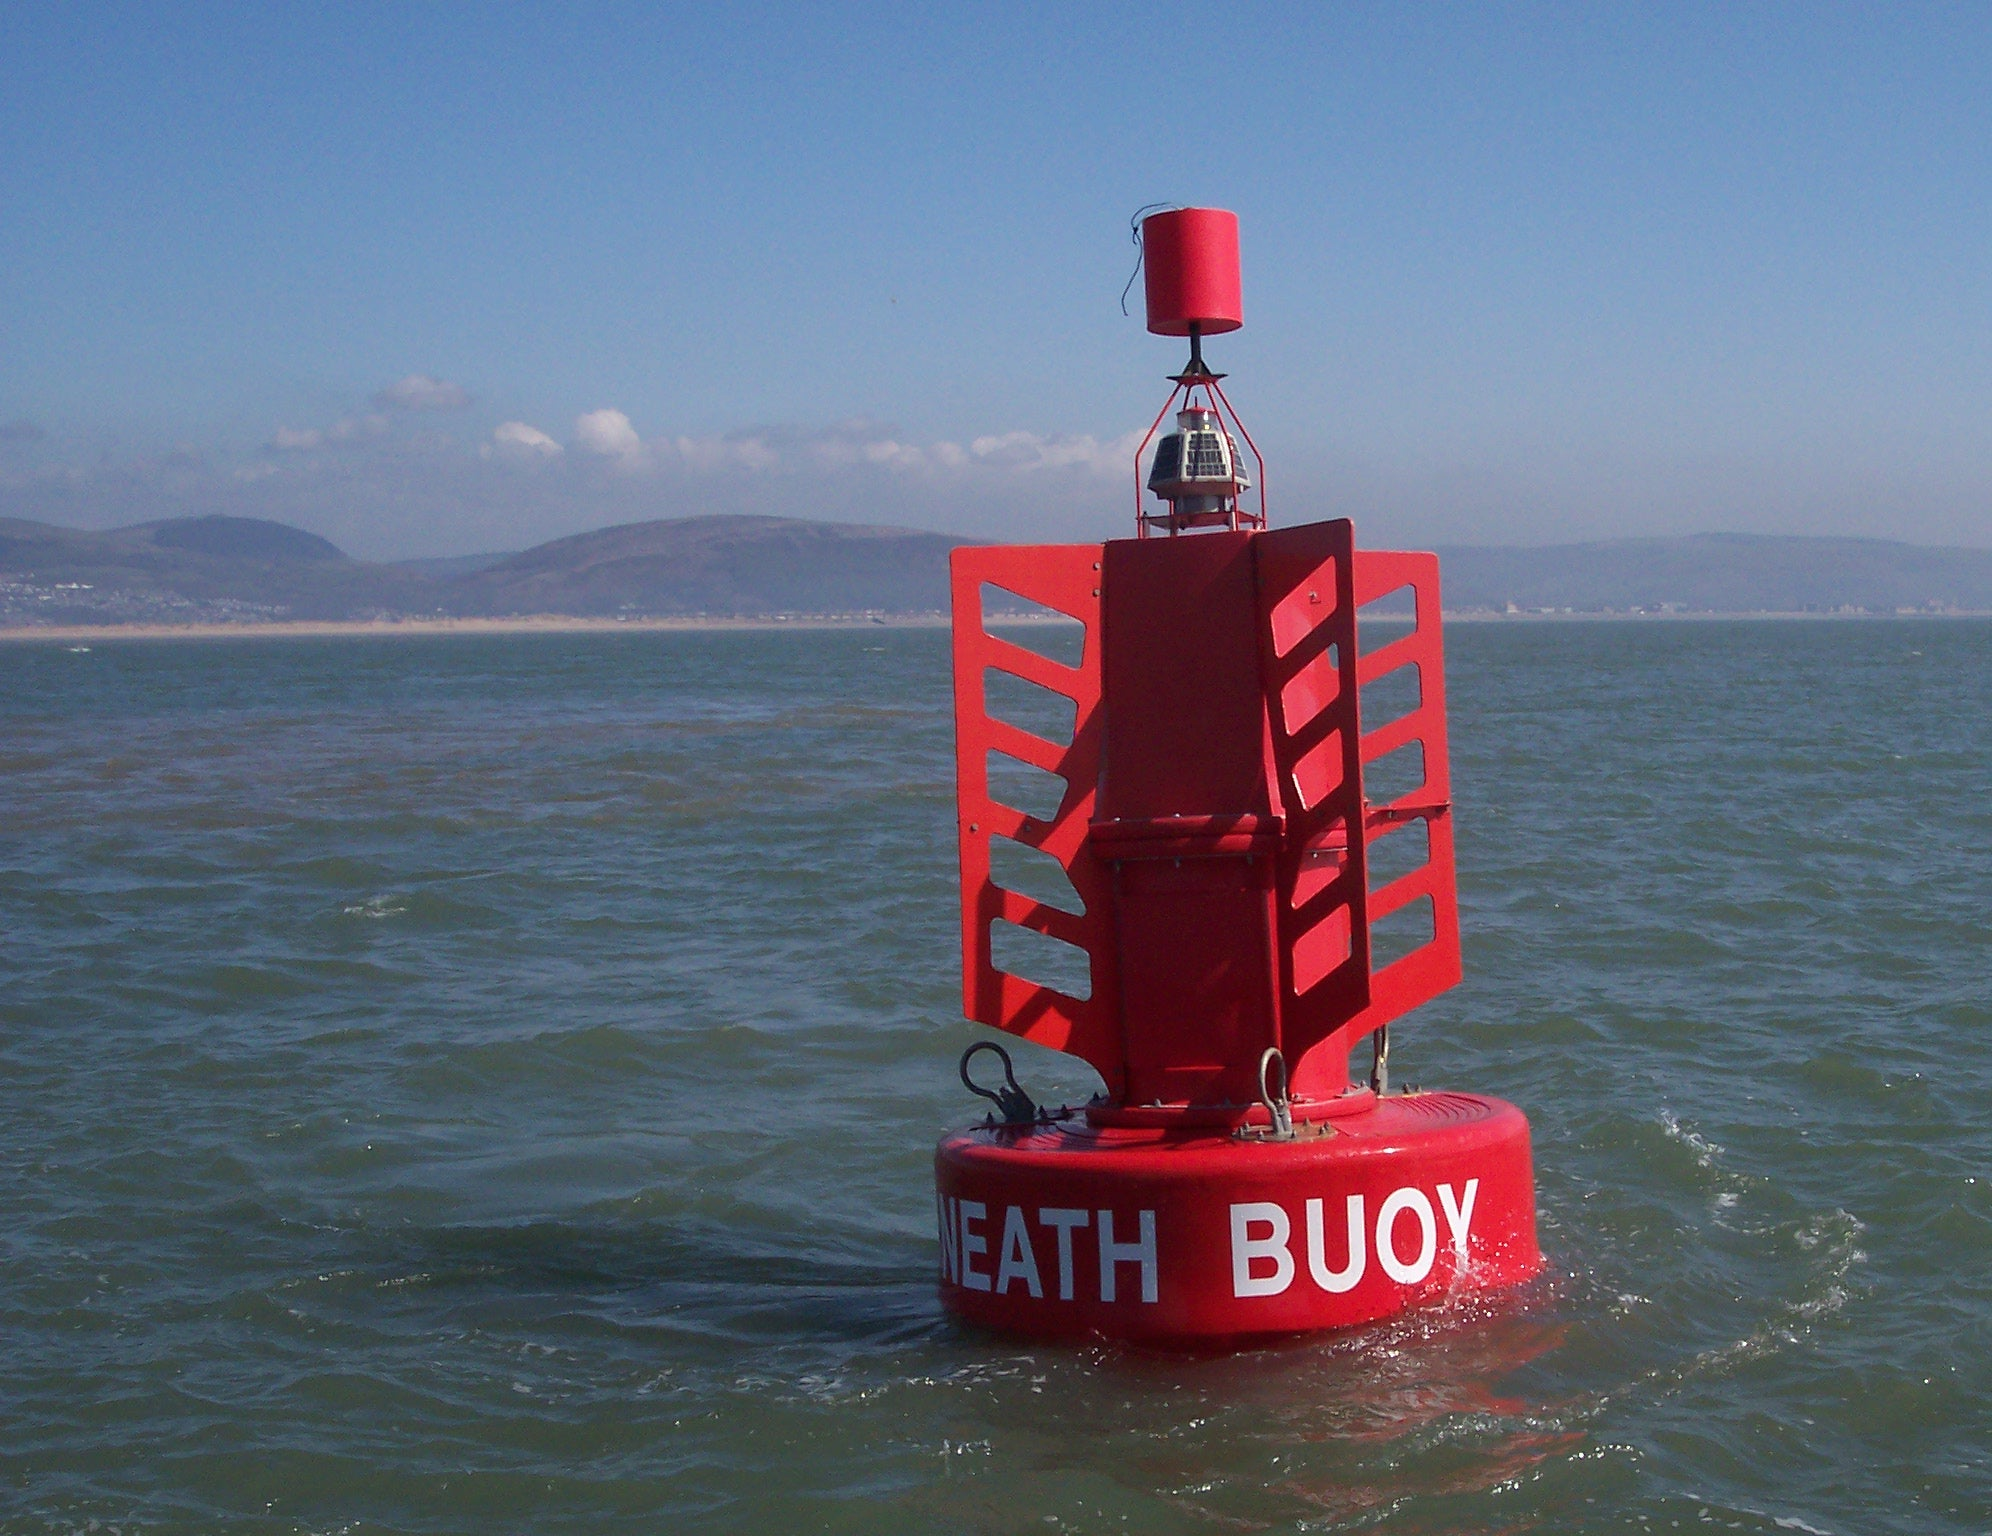 Good morning and happy tuesday pictures photos and images for - It S A Buoy